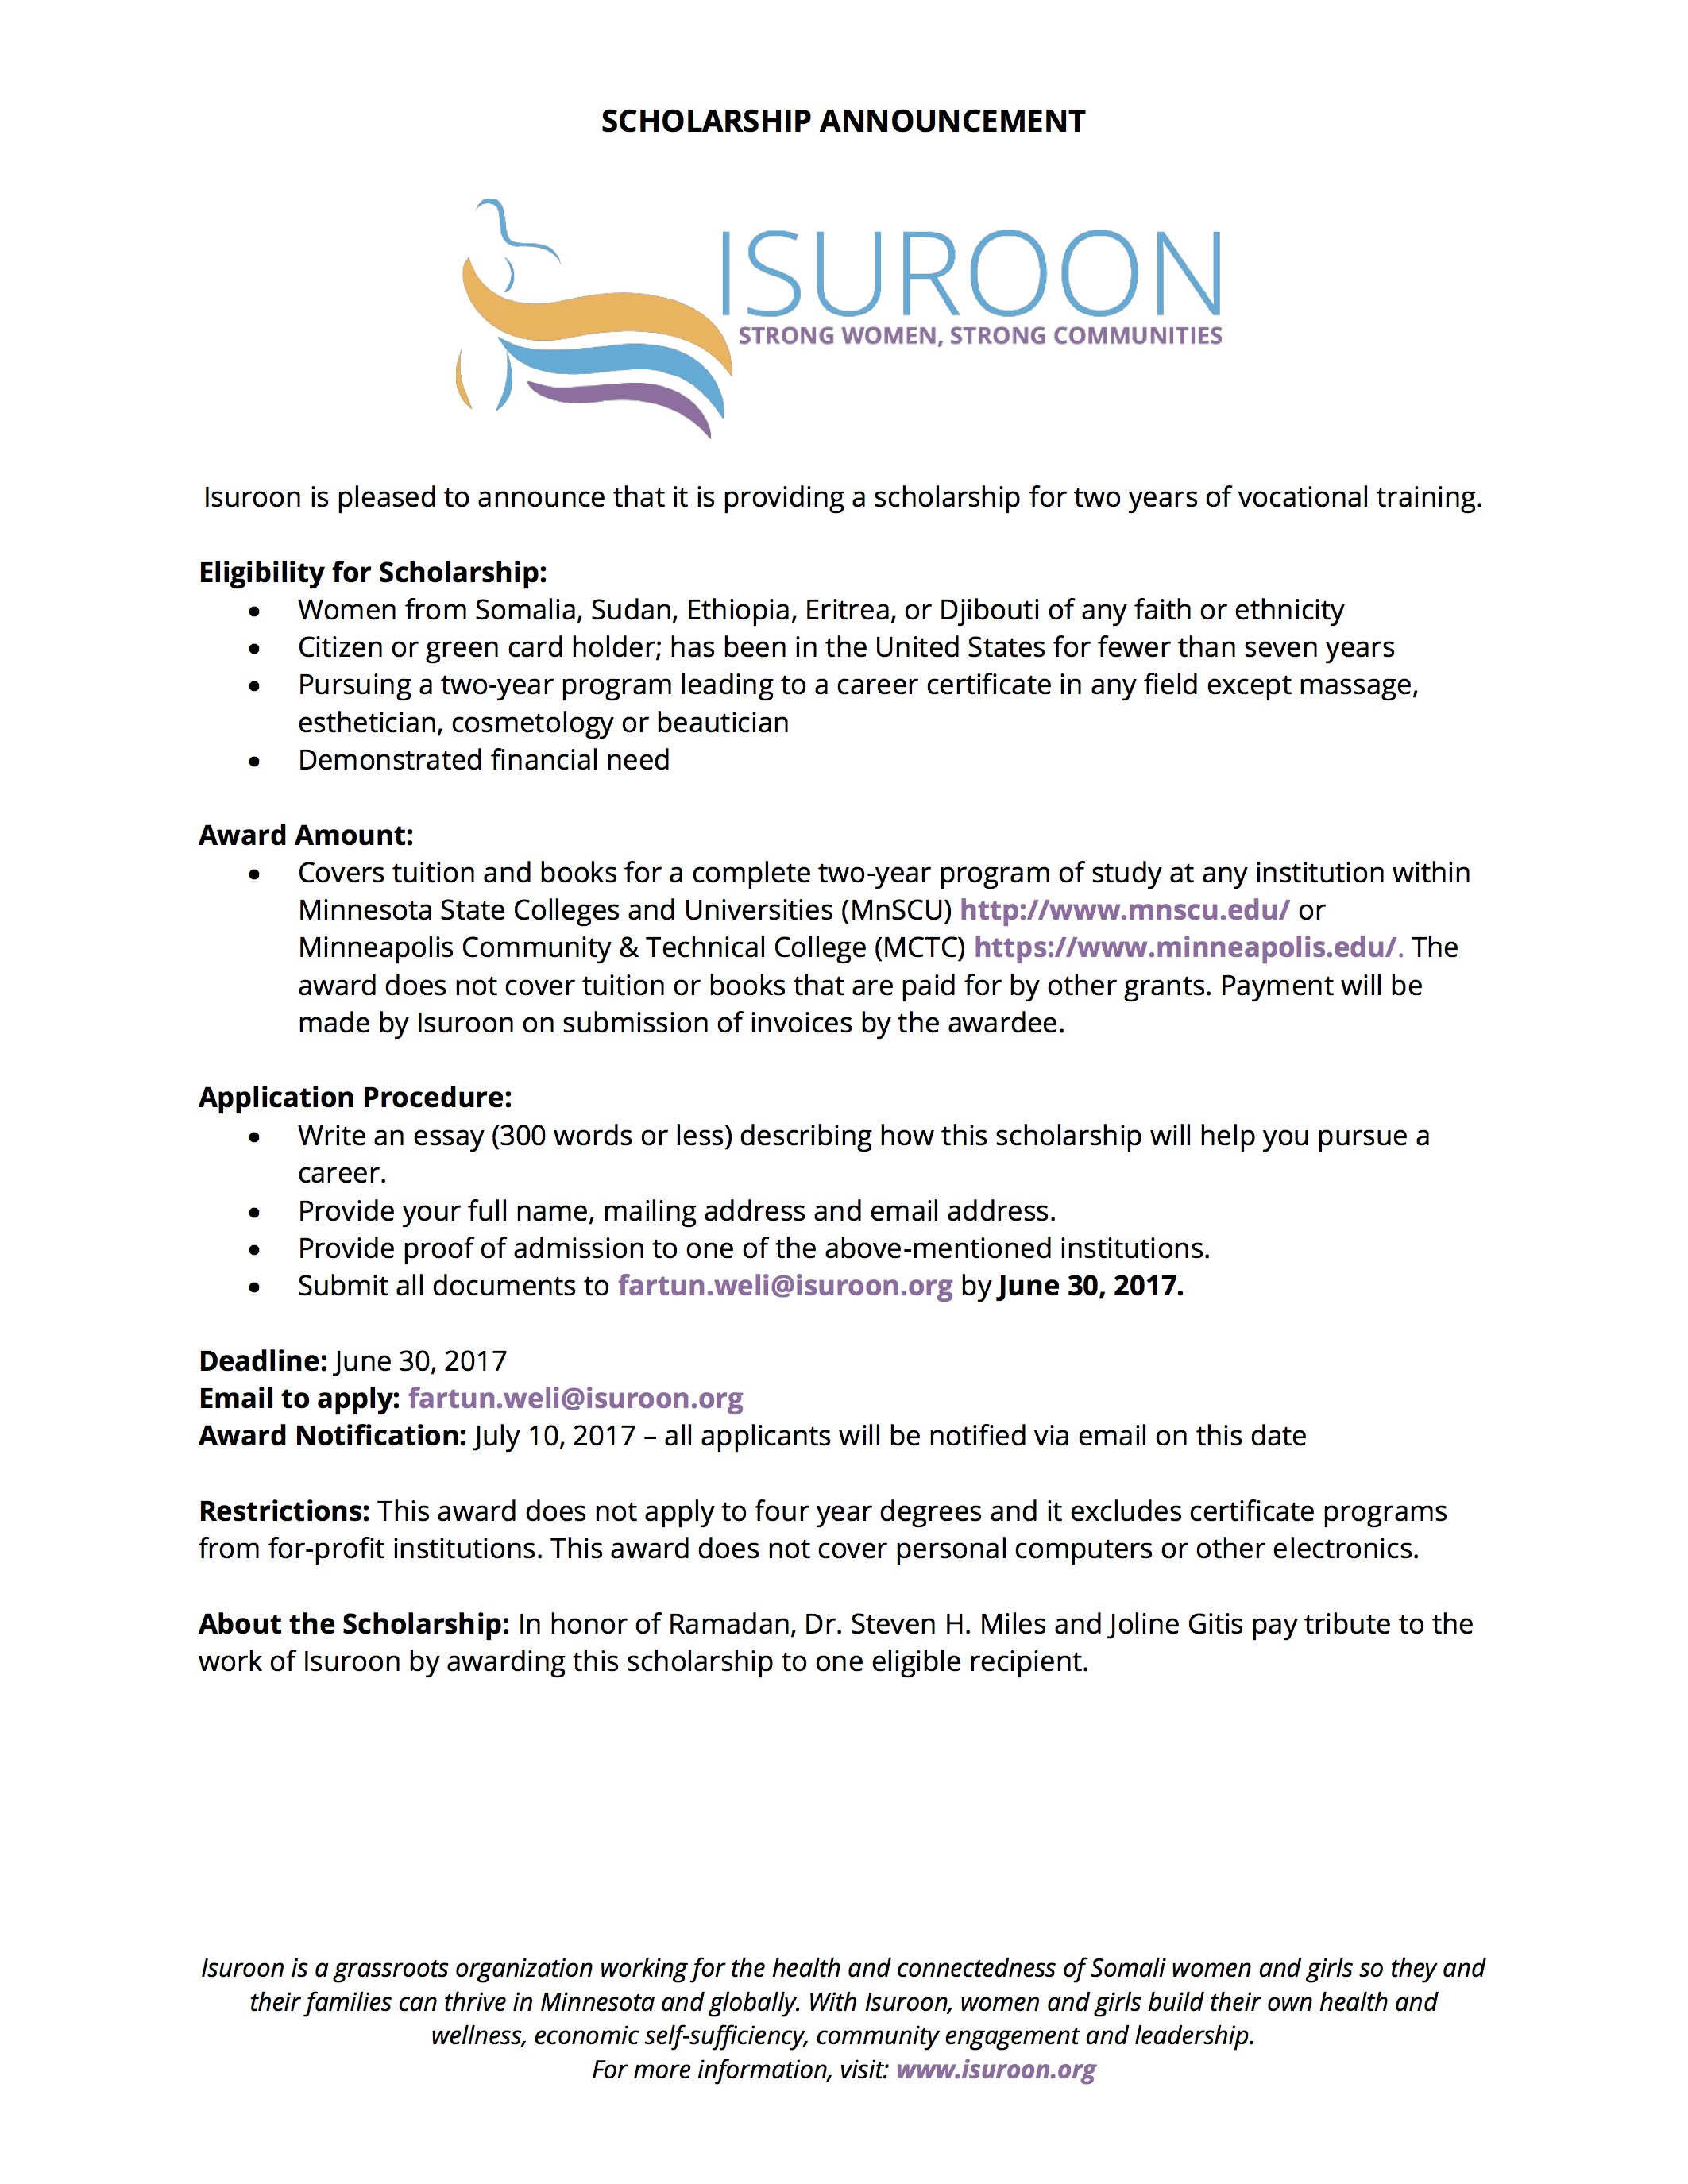 Isuroon_Scholarship_Announcement_2017.jpg